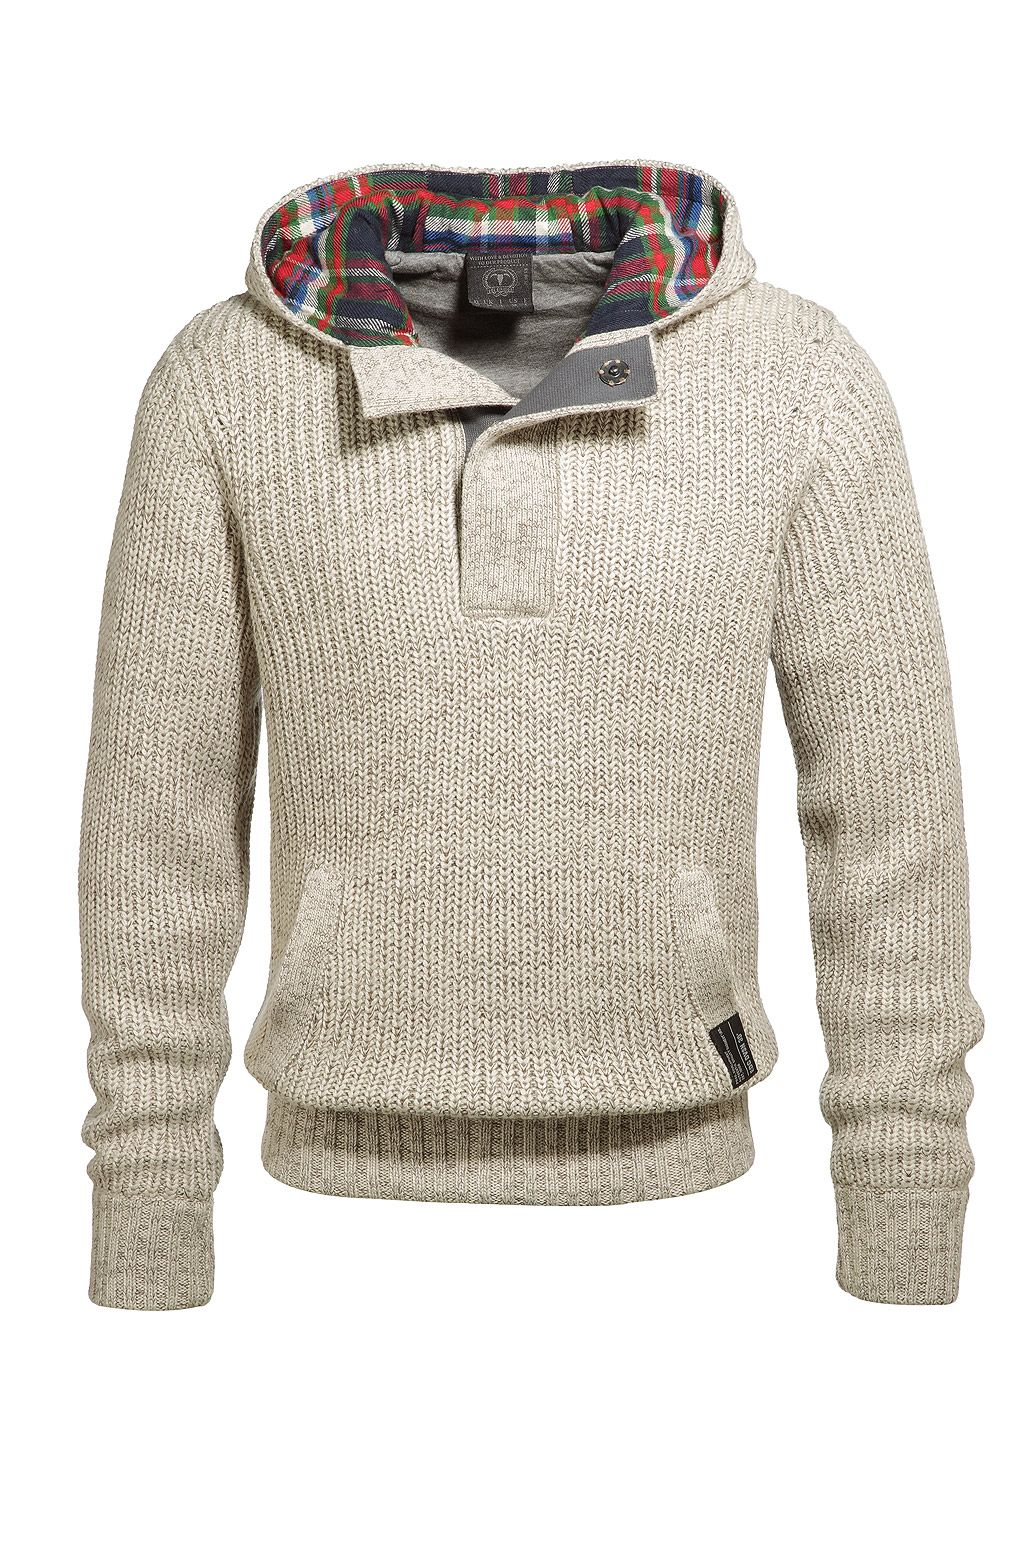 Hooded Sweater with Colorful Lining, very vintage nautical looking I like it